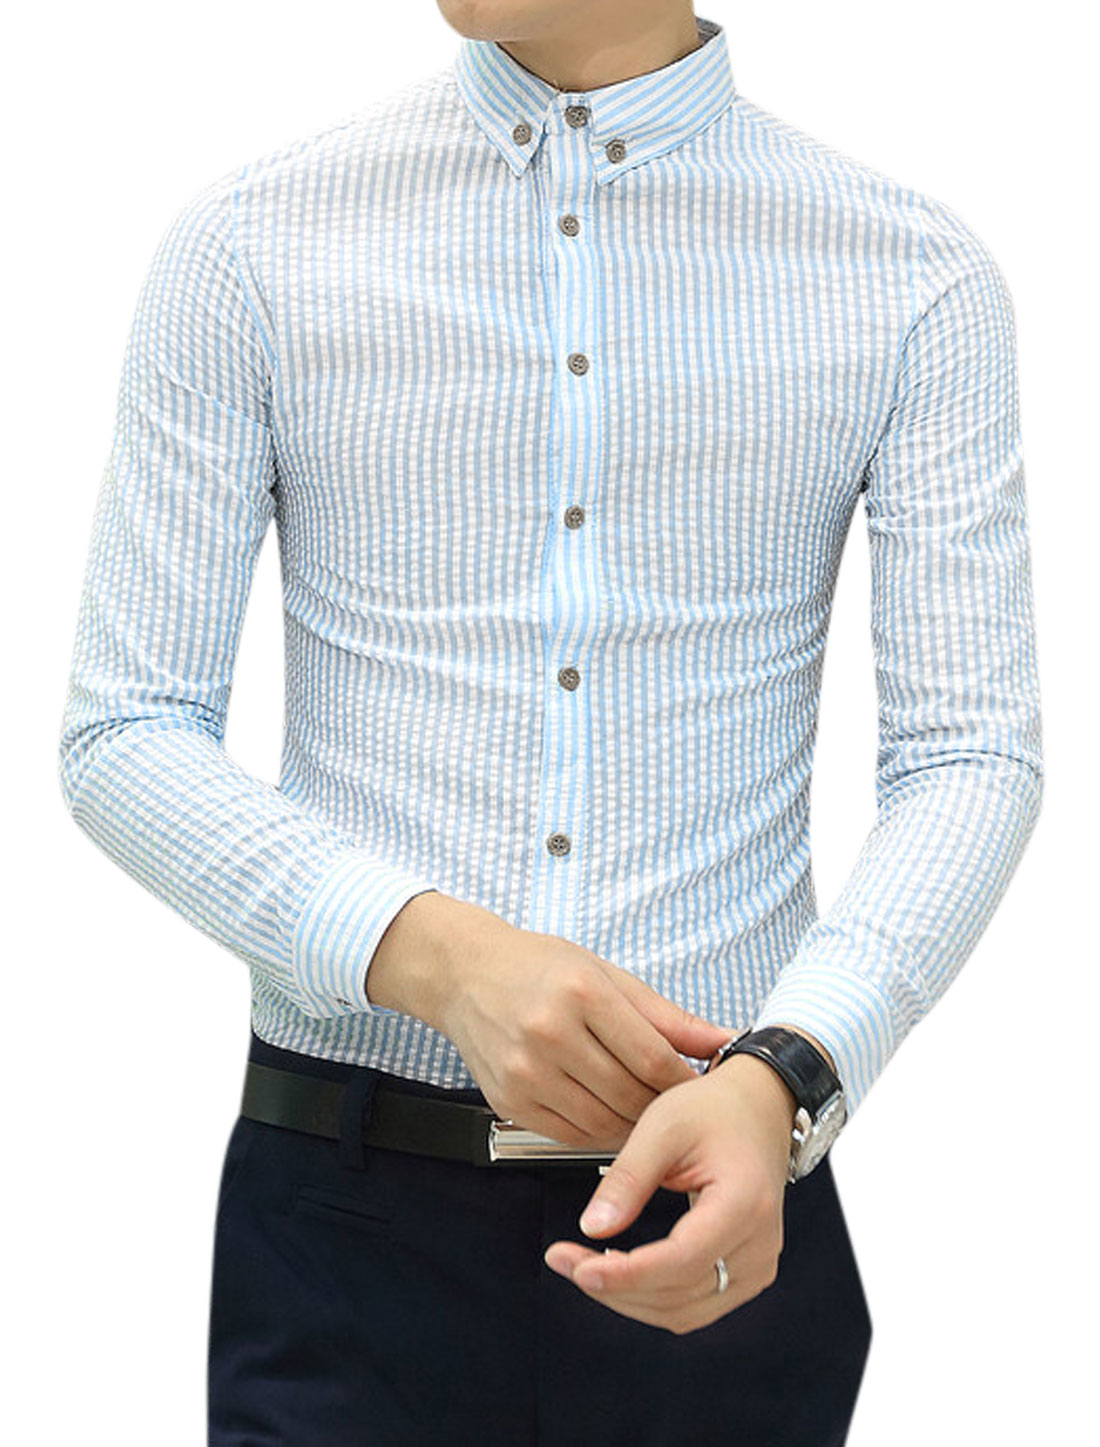 Men Stripes Long Sleeves Button Closed Casual Shirt Blue White S